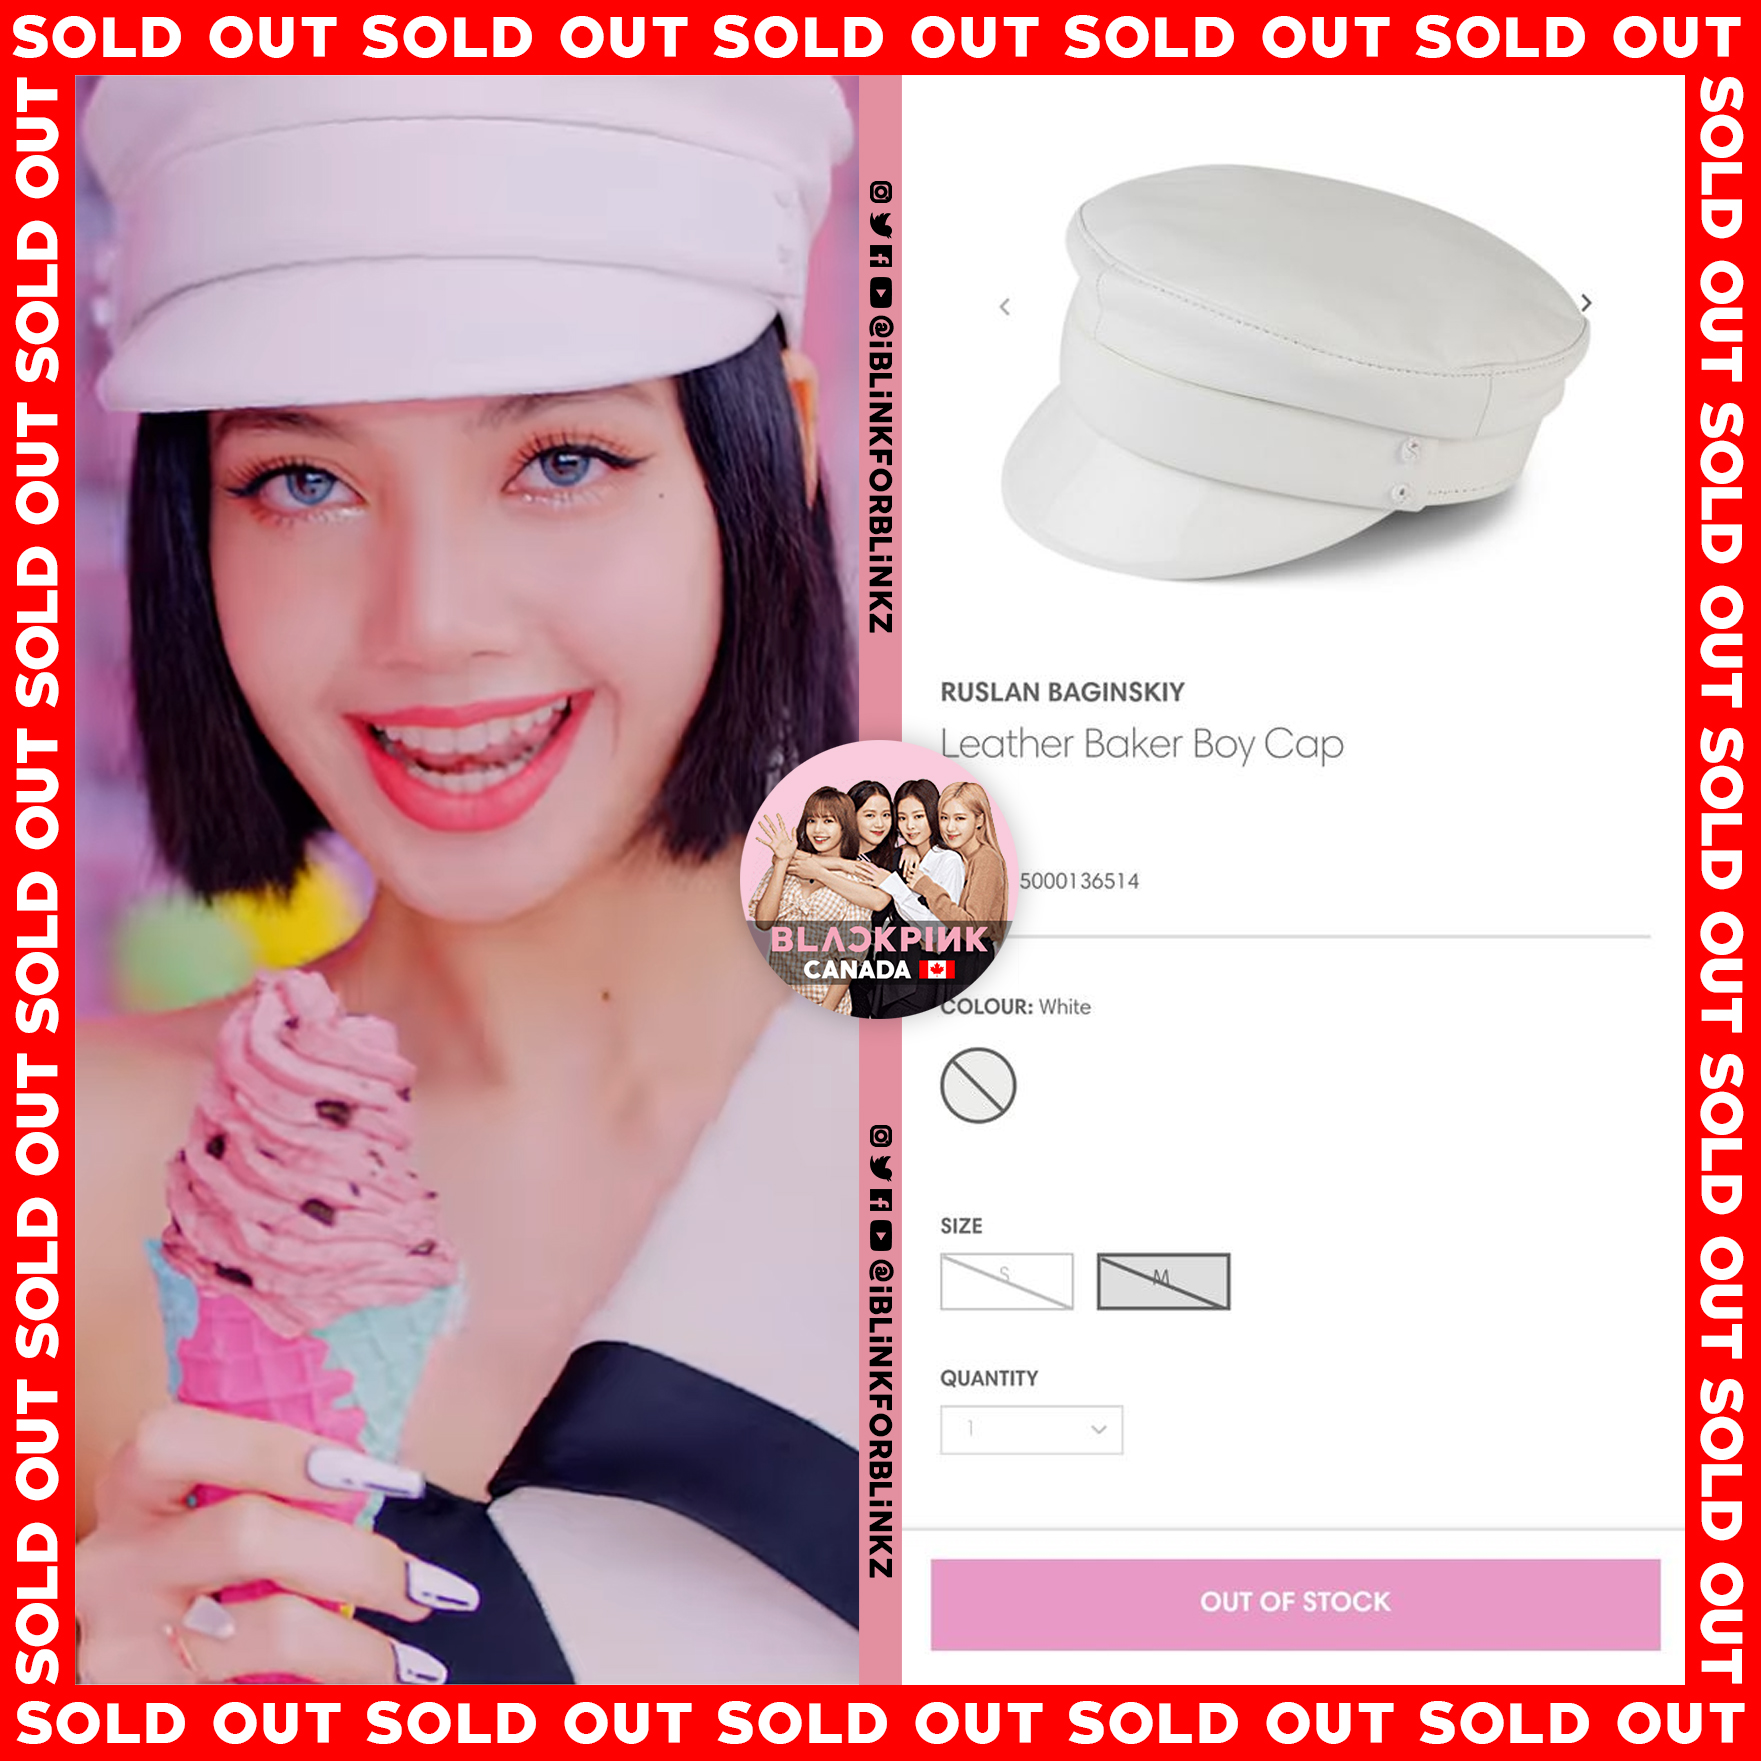 blackpink lisa sold out ice cream 3